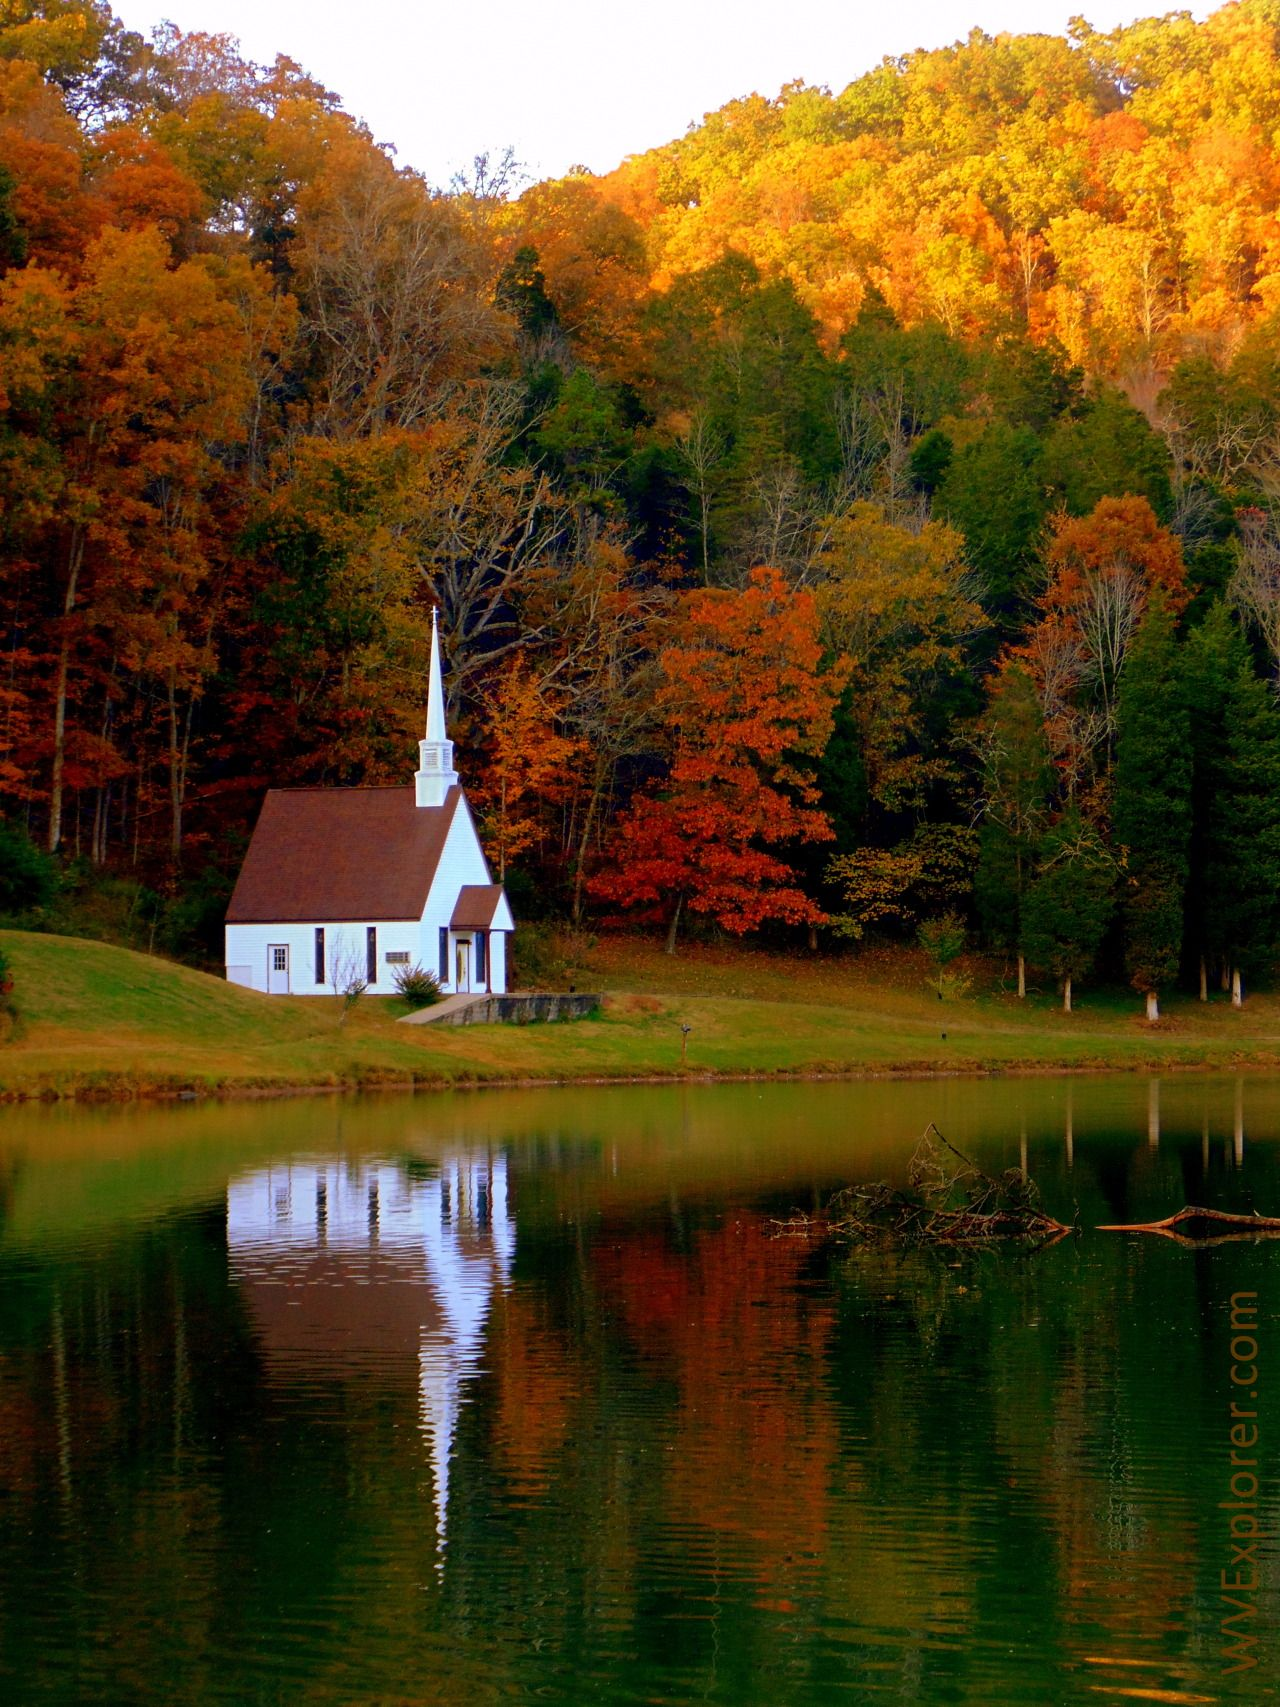 The little Church of God chapel near Romance, WV, in Jackson County, seemed perfectly suited to the autumn backdrop.